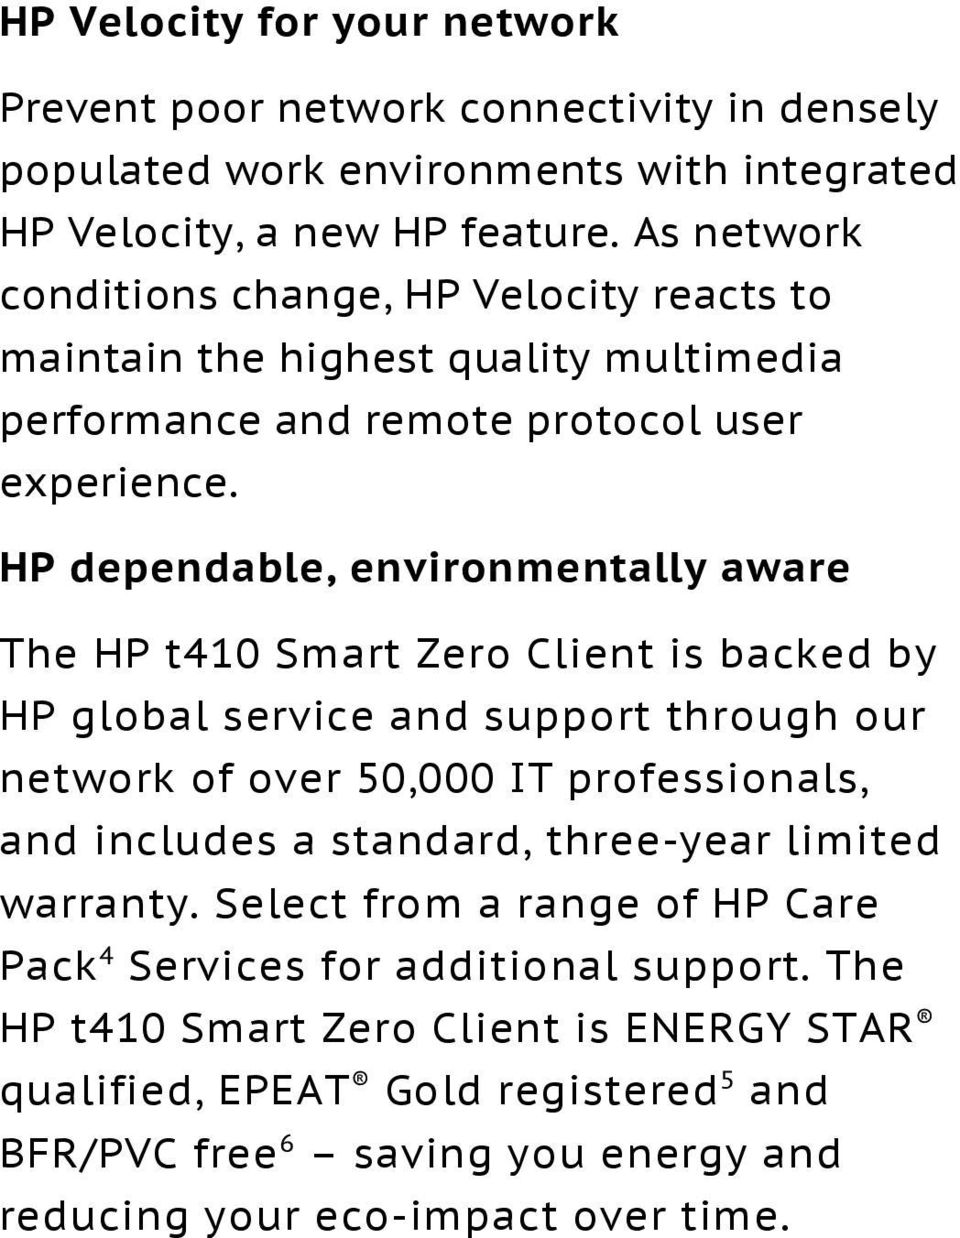 HP dependable, environmentally aware The HP t410 Smart Zero Client is backed by HP global service and support through our network of over 50,000 IT professionals, and includes a